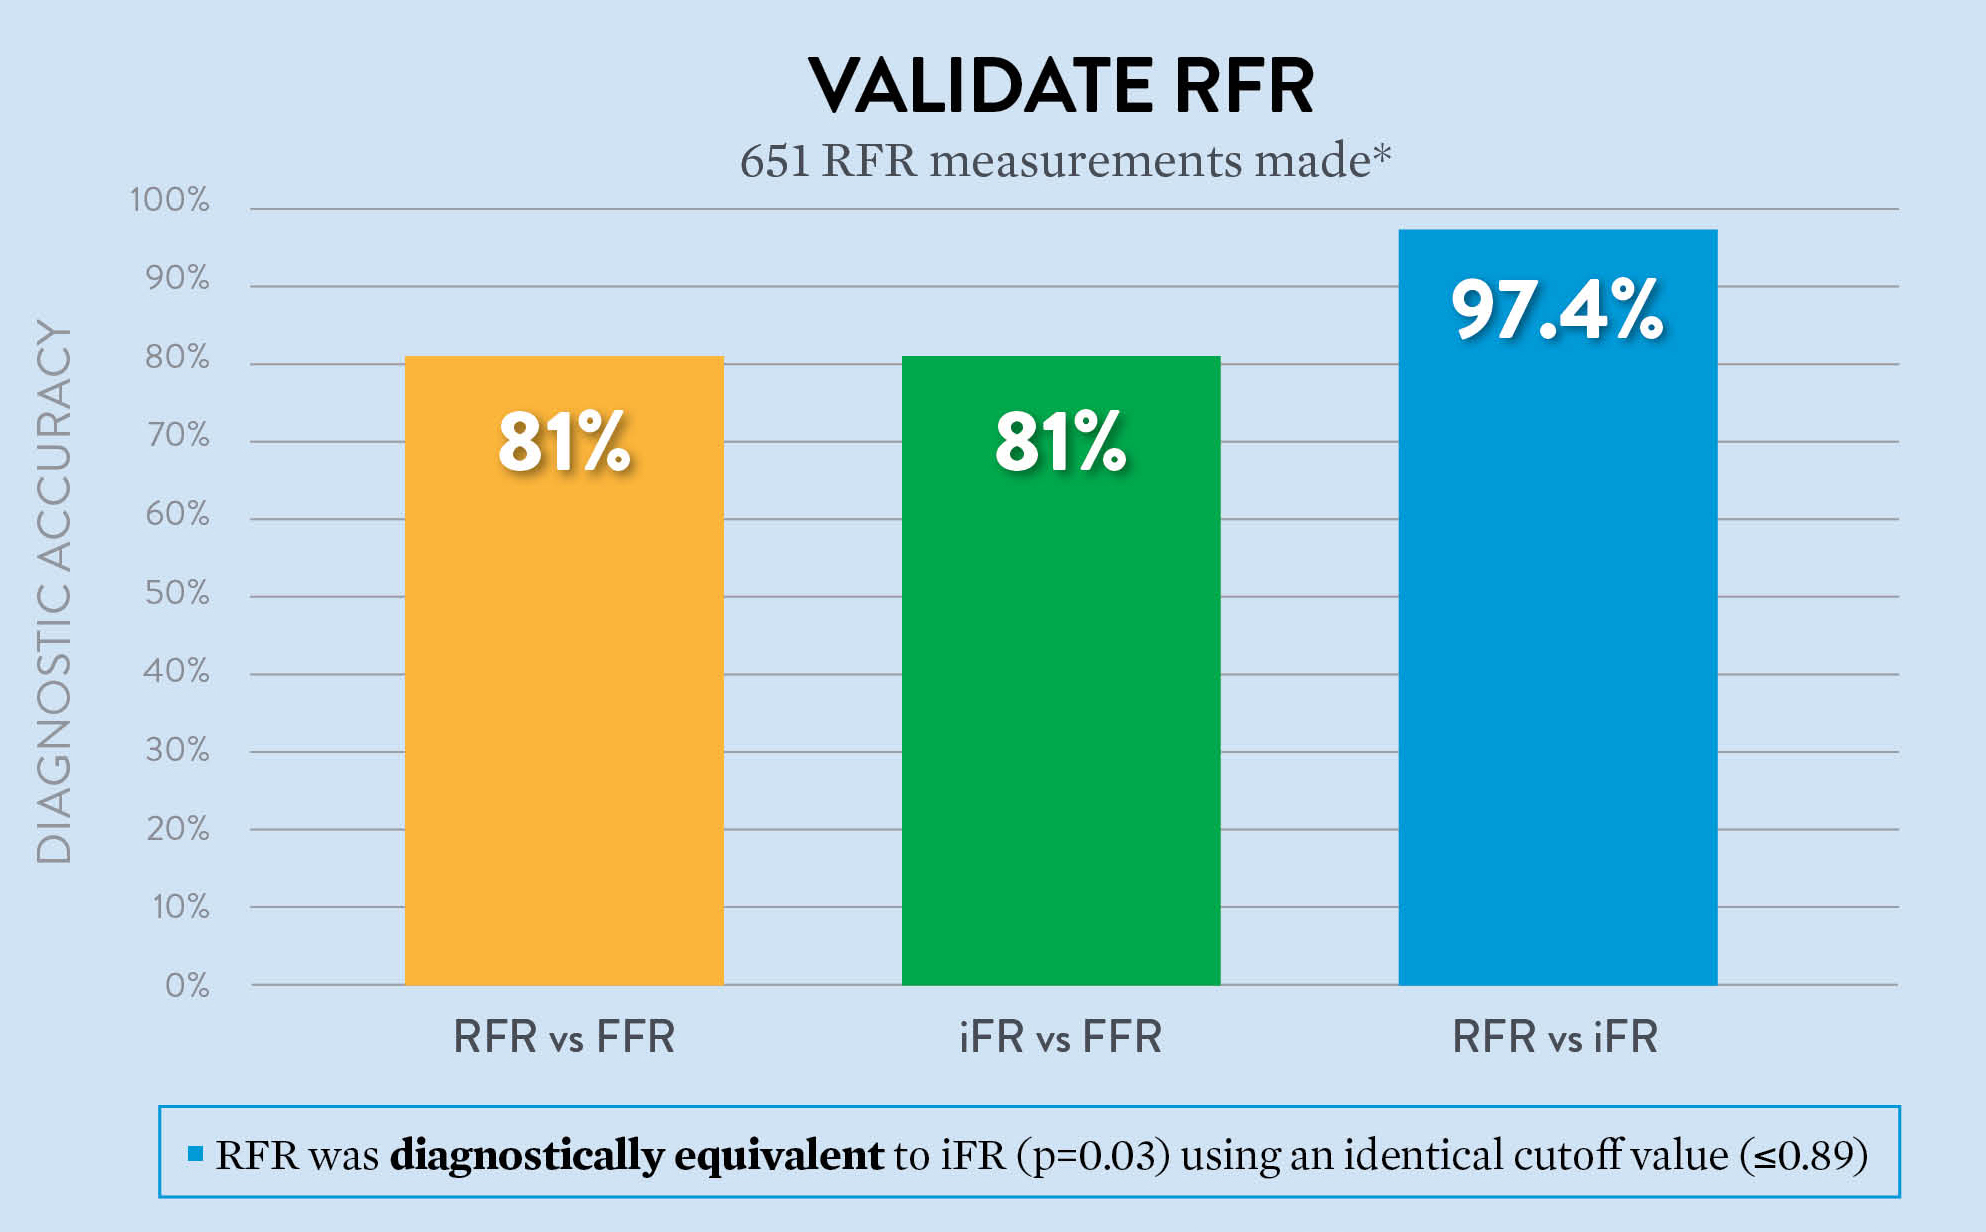 RFR™ is diagnostically equivalent to iFR per VALIDATE RFR